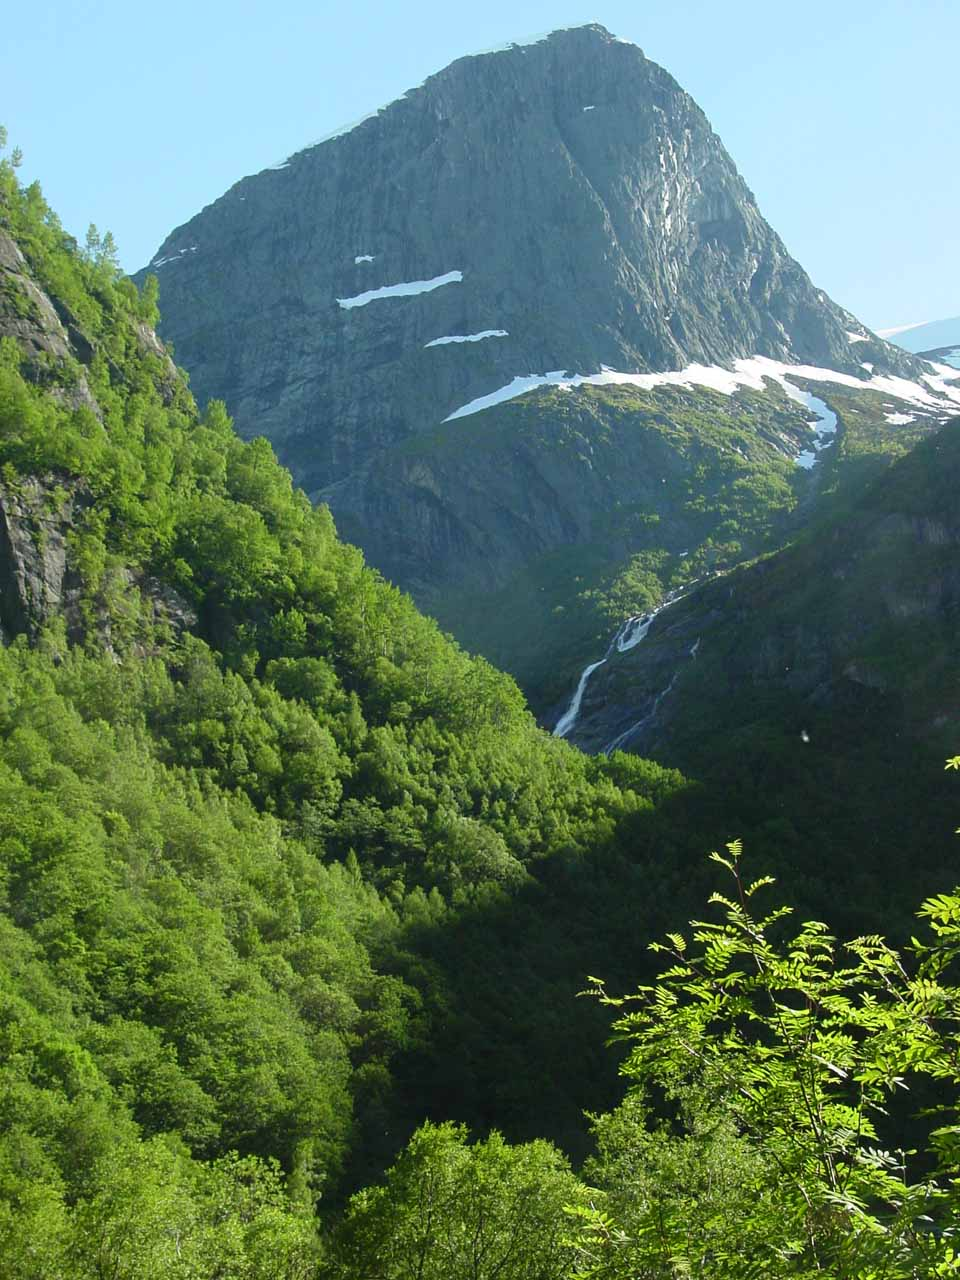 During the start of the hike up to Briksdalsbreen, we noticed this partial view of another waterfall in the next drainage to the south of the one for Volefossen